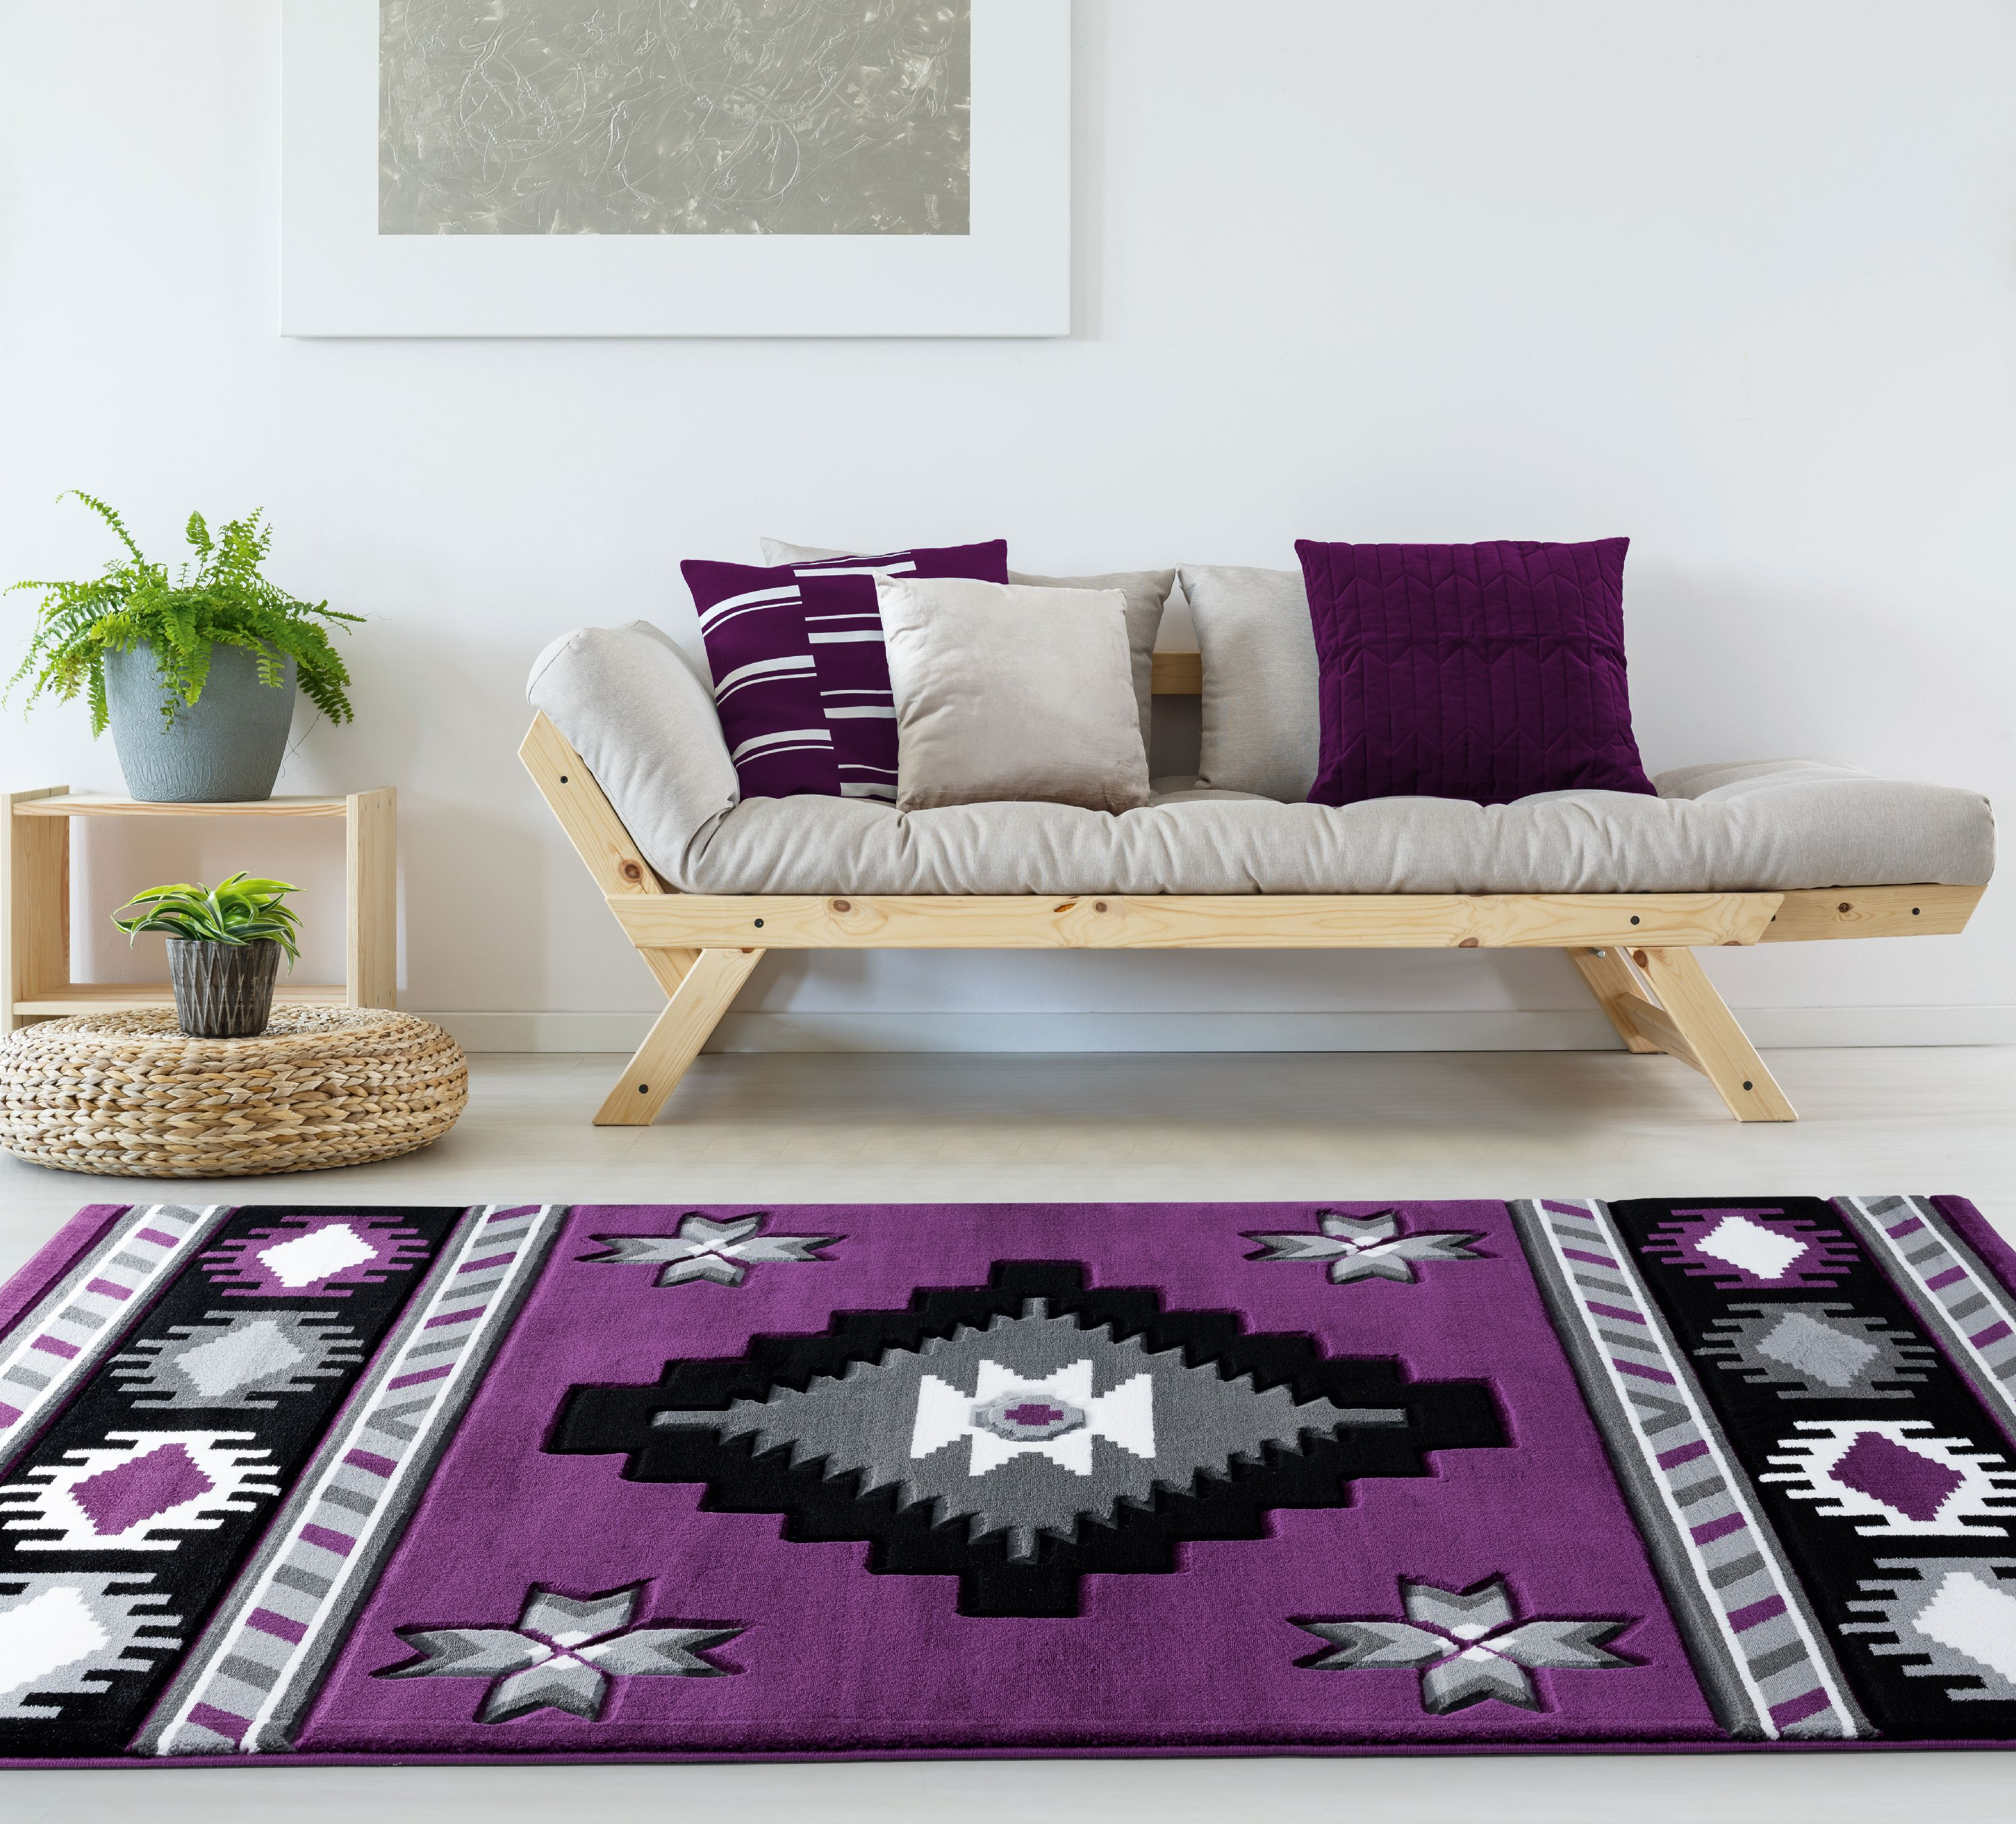 United Weavers Drachma Volos Southwestern Plum Woven Olefin/Polypropylene Area Rug or Runner